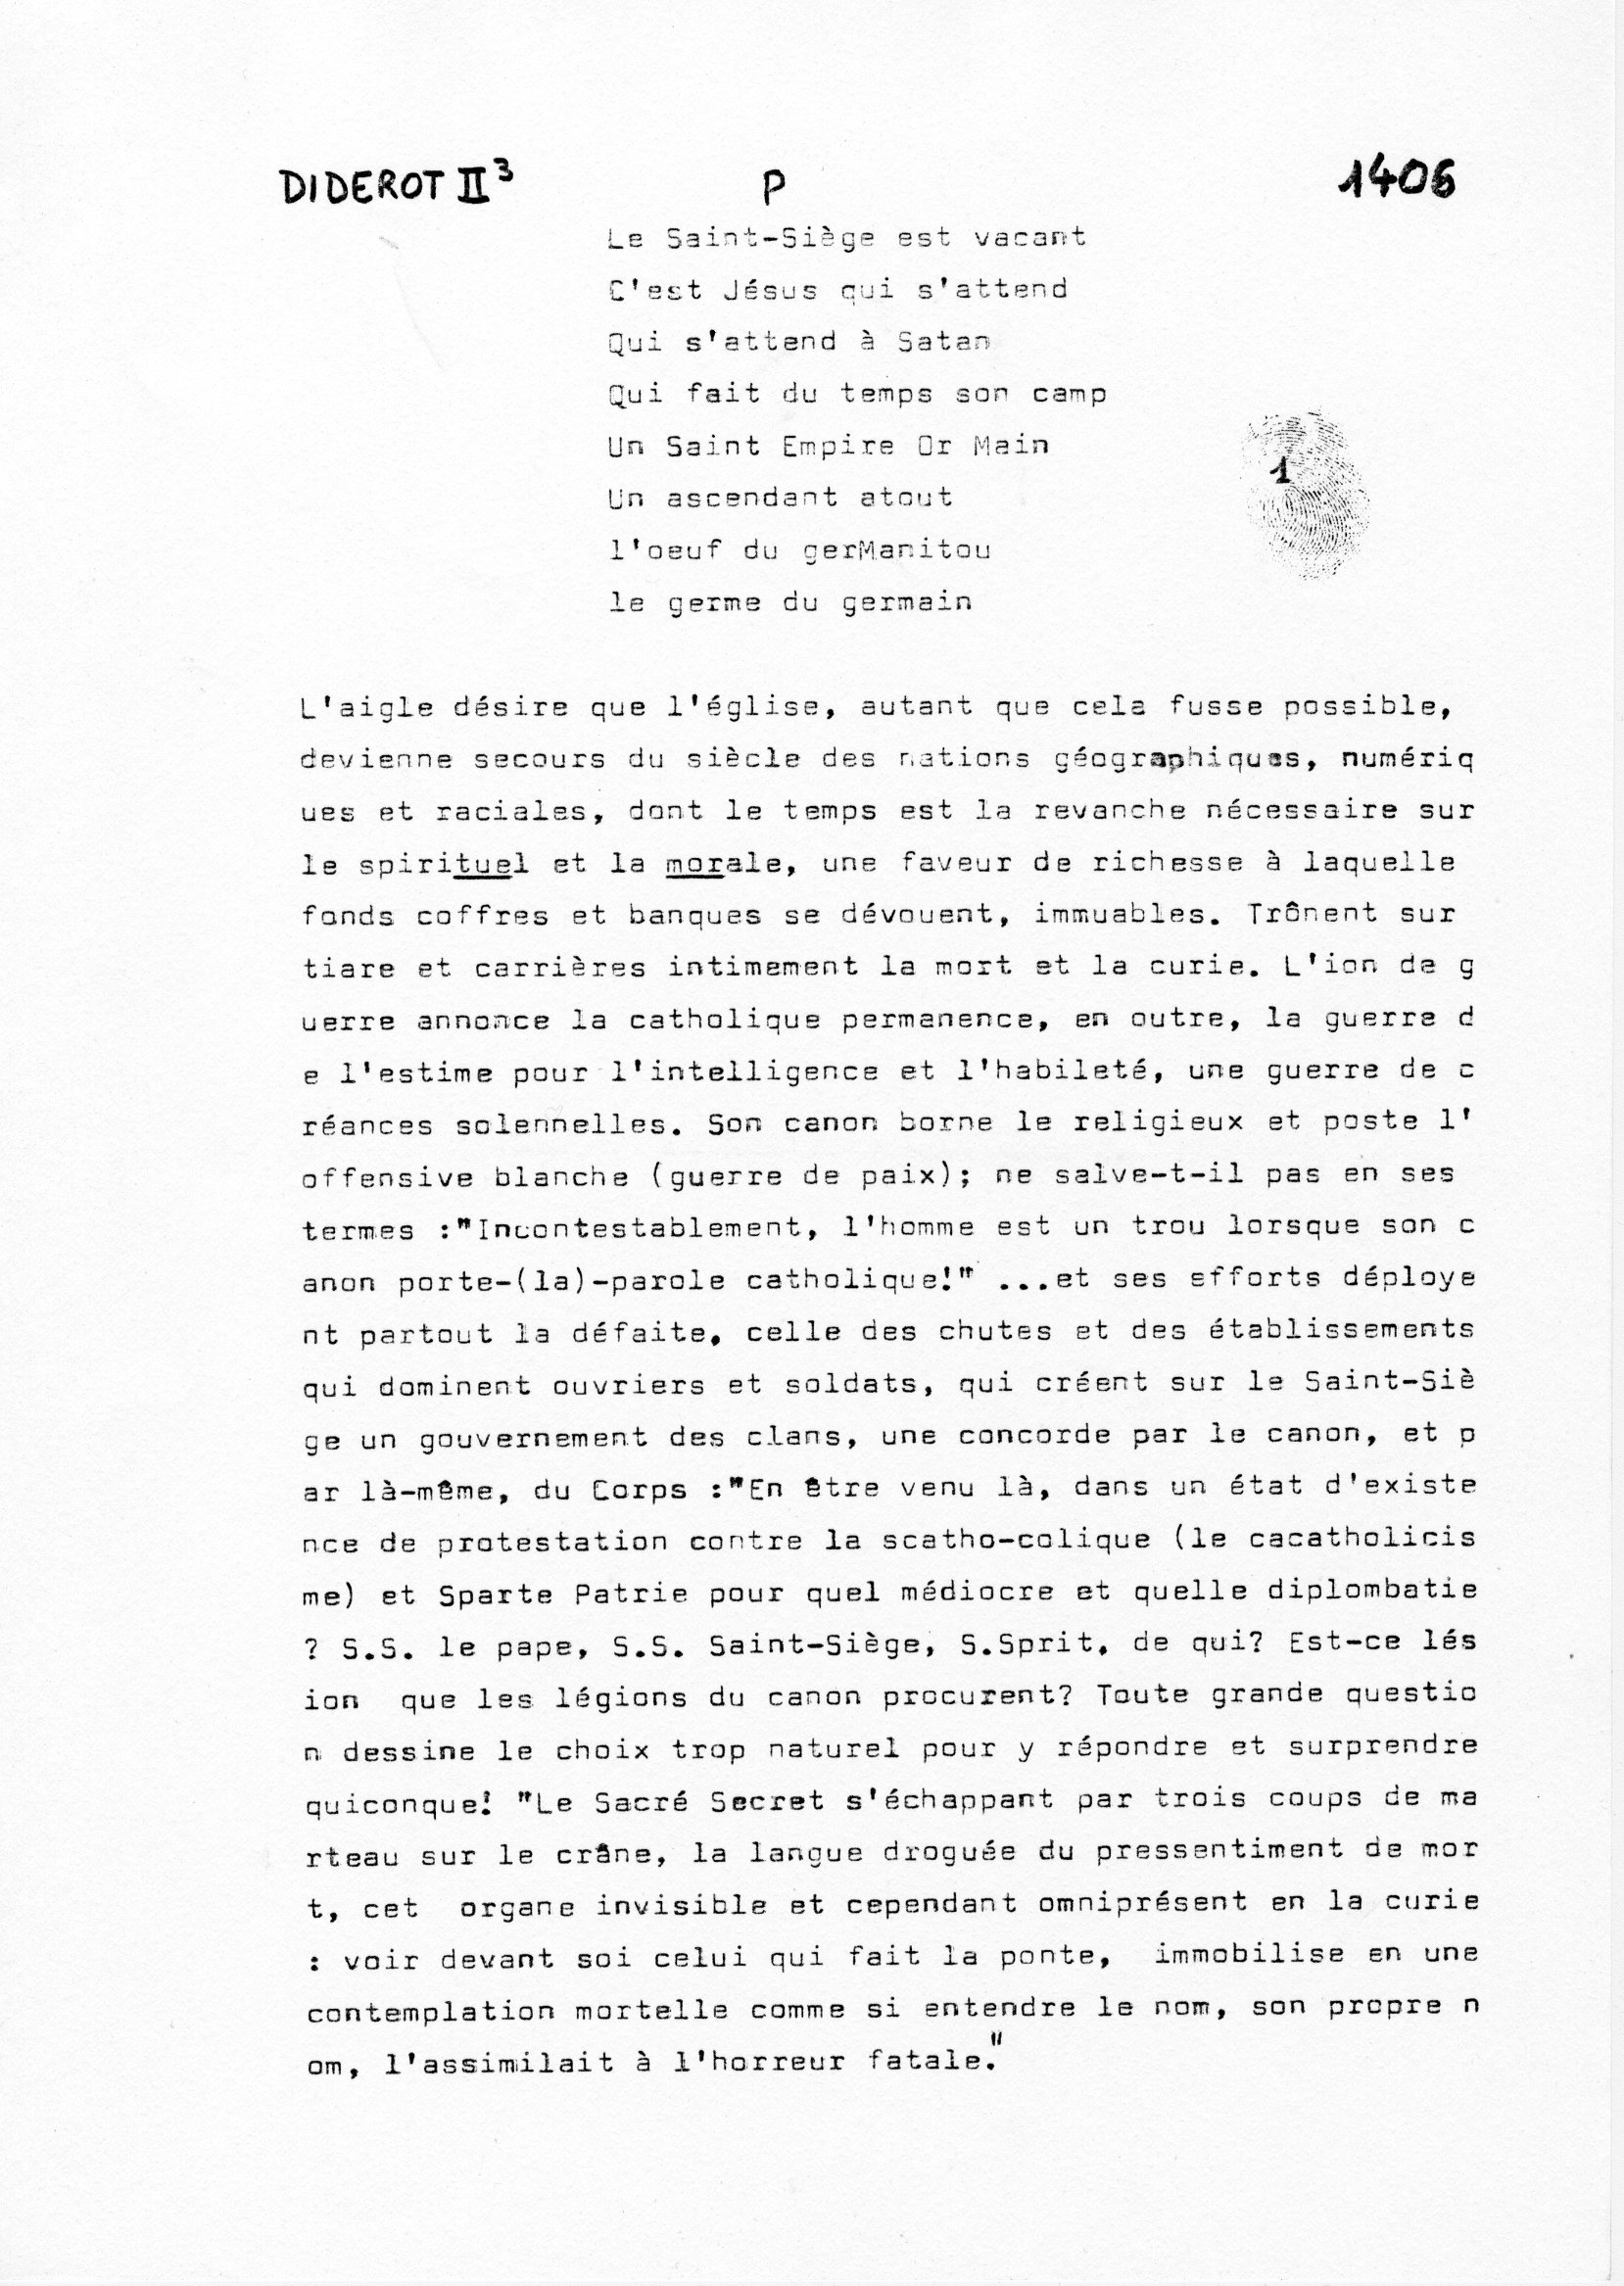 page 1406 Diderot II p3 P